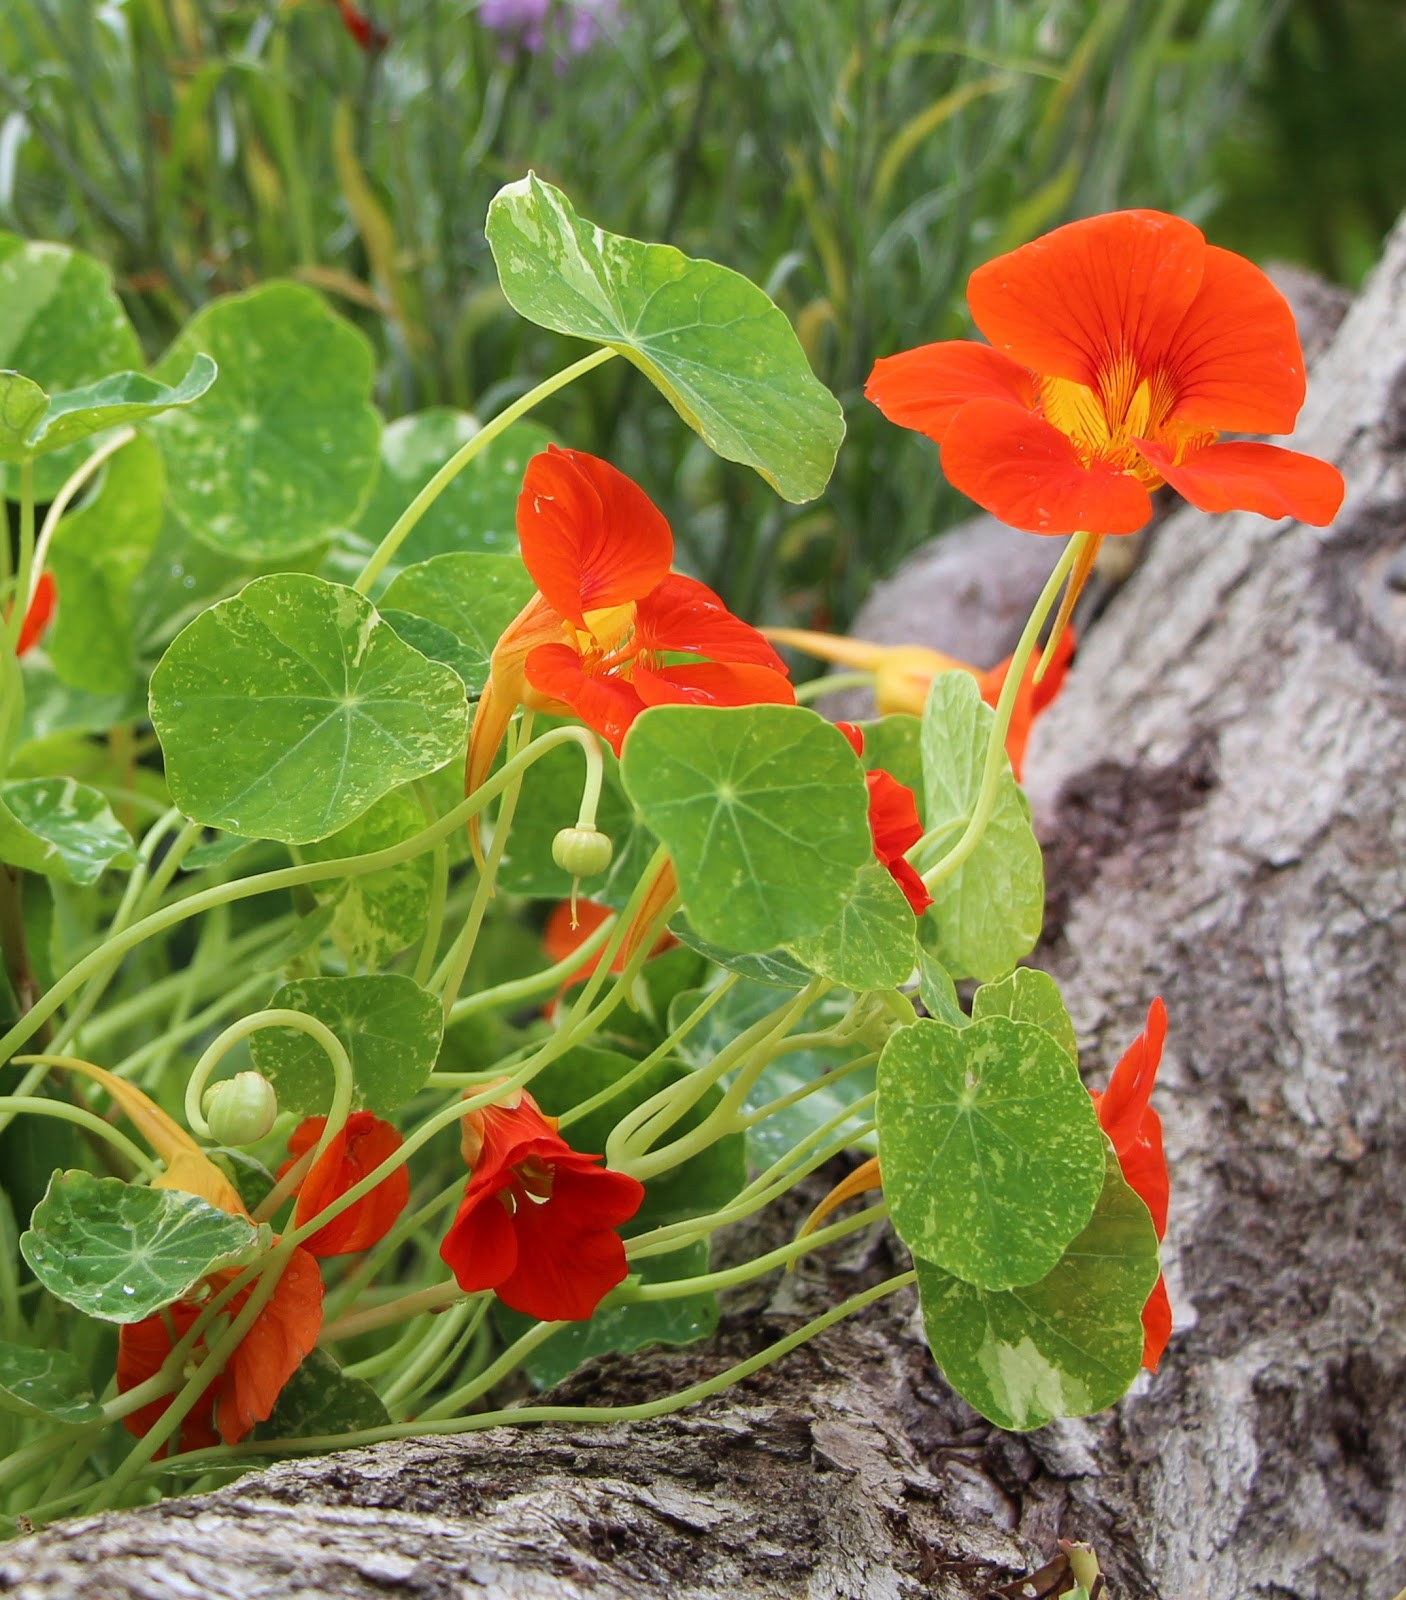 Buy culinary herbs plants nasturtium plants - I Must Have Around 15 Nasturtium Plants Around The Allotment The Climbing Variety Are Always Sown With My Beans Not Only Does It Look Pretty Climbing Up